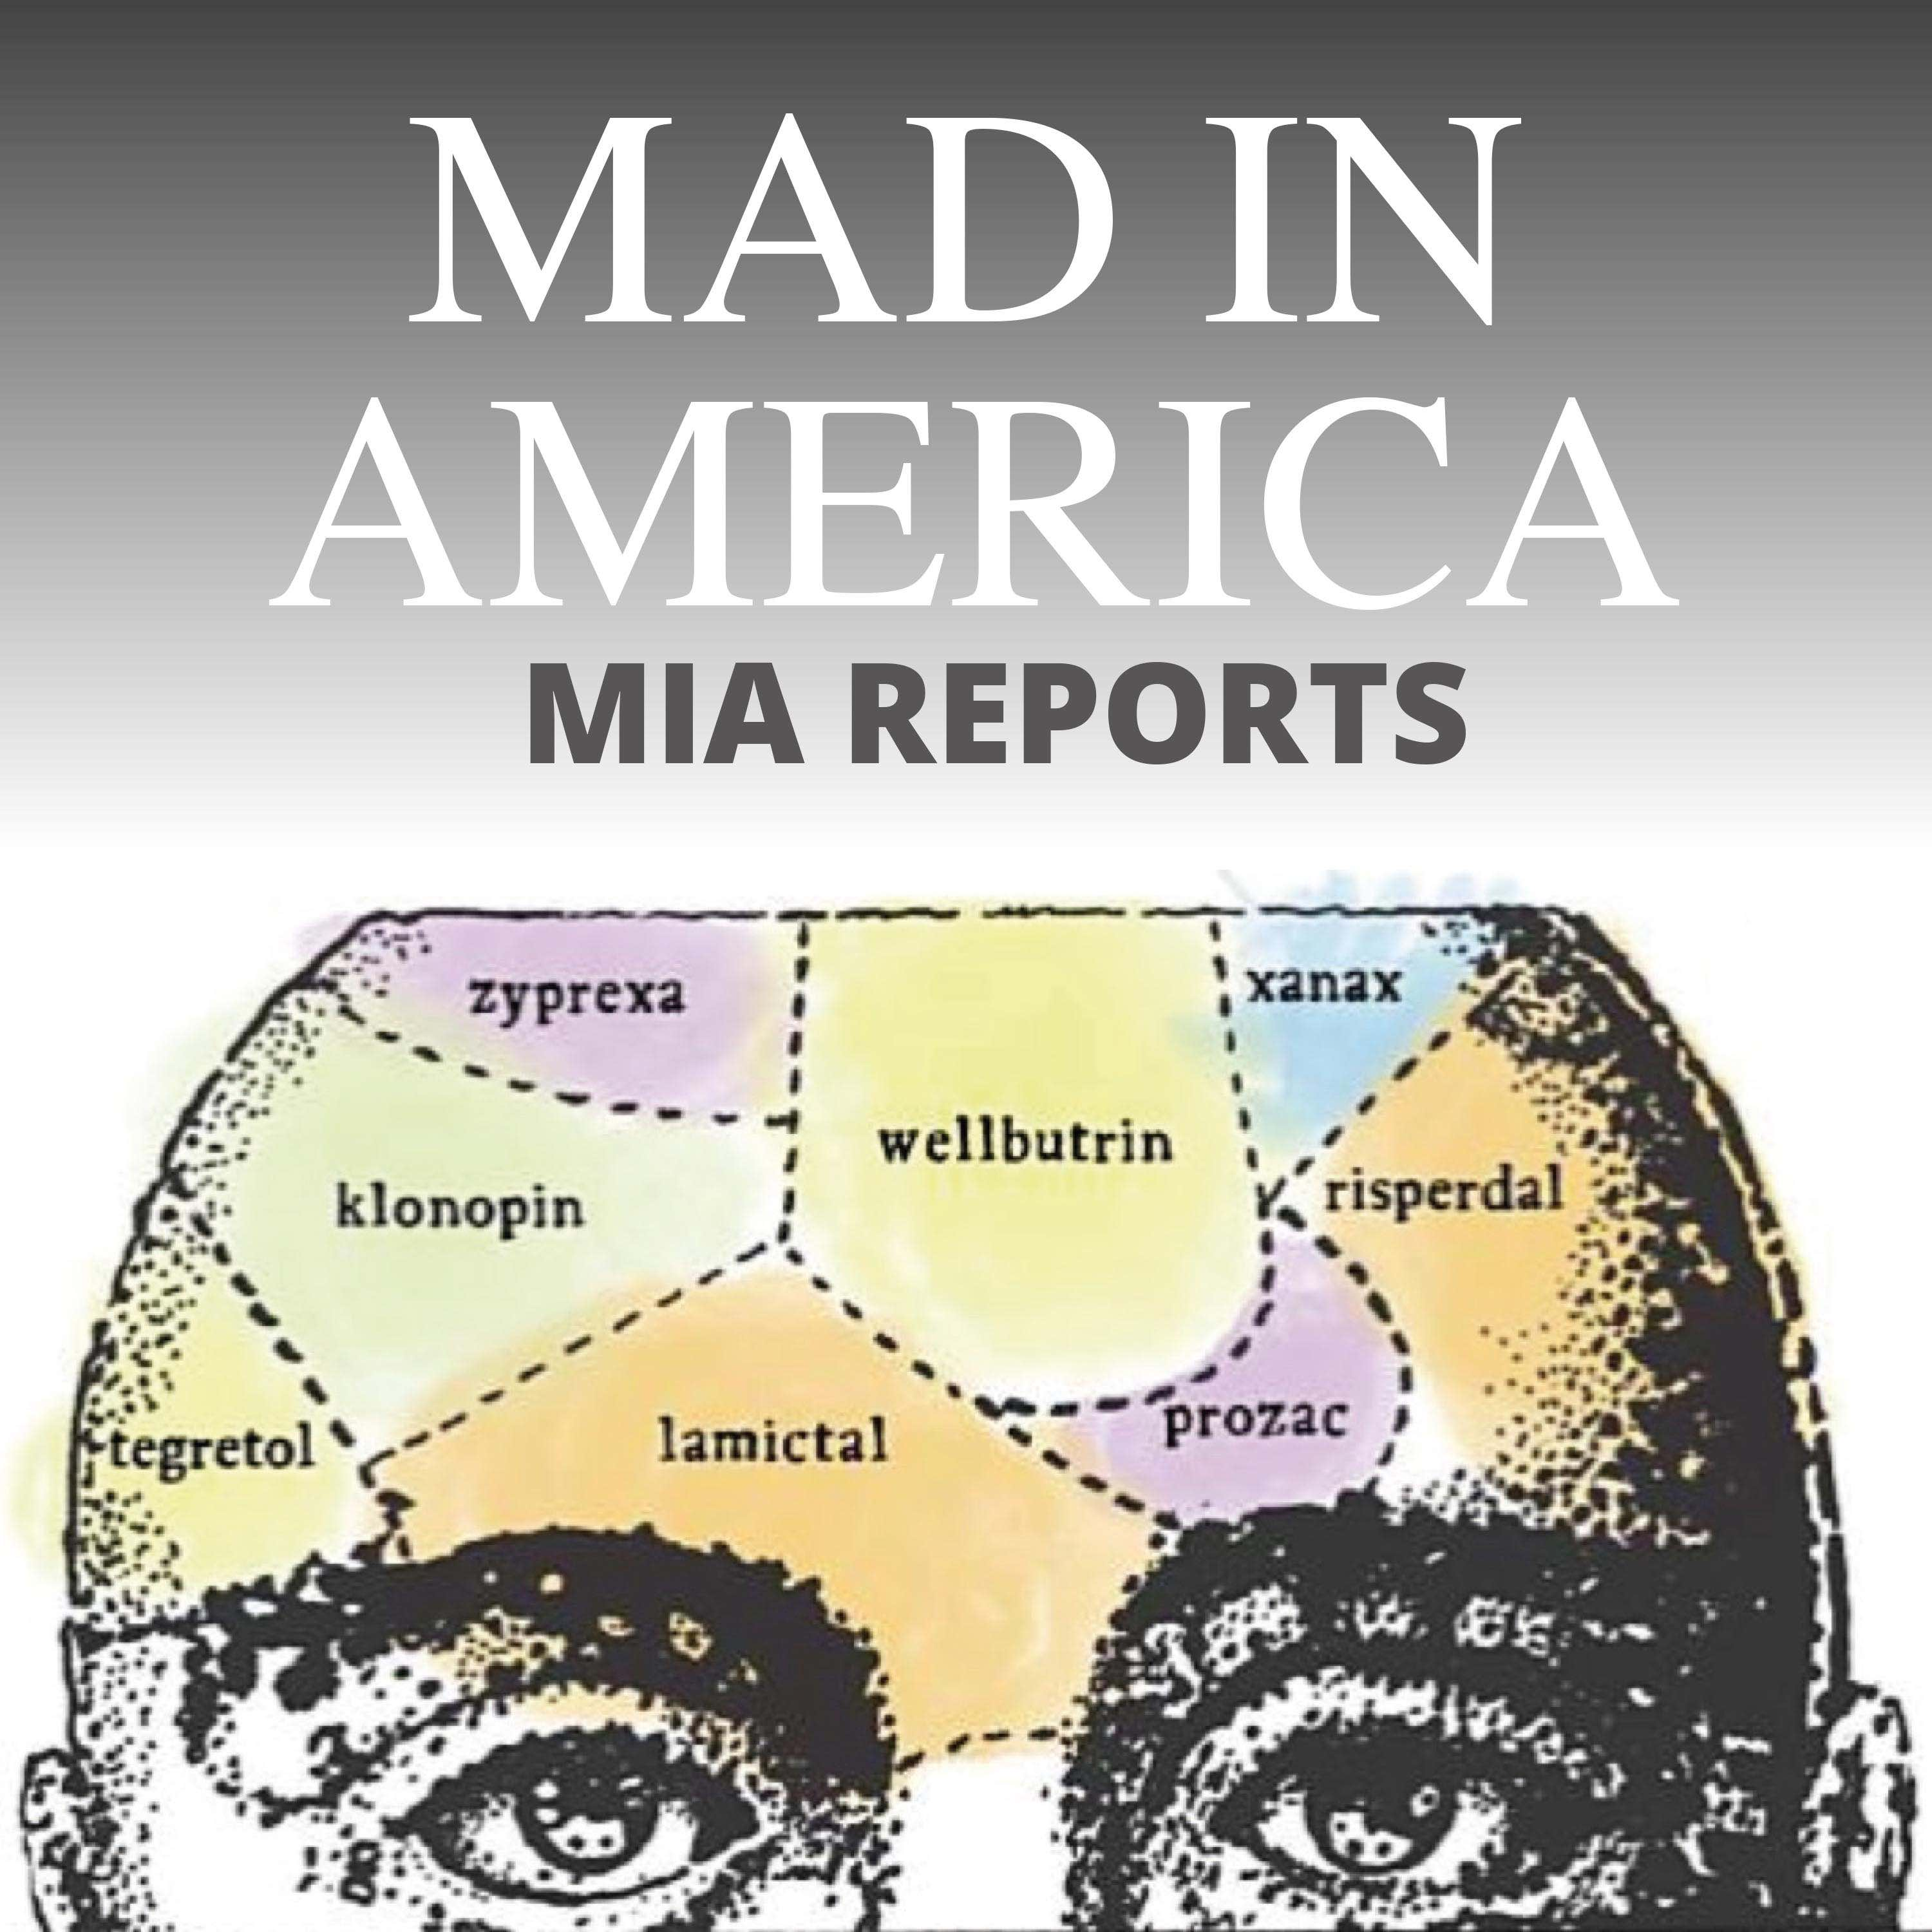 Mad in America: Rethinking Mental Health - MIA Report - Medication-Free Treatment in Norway - A Private Hospital Takes Center Stage